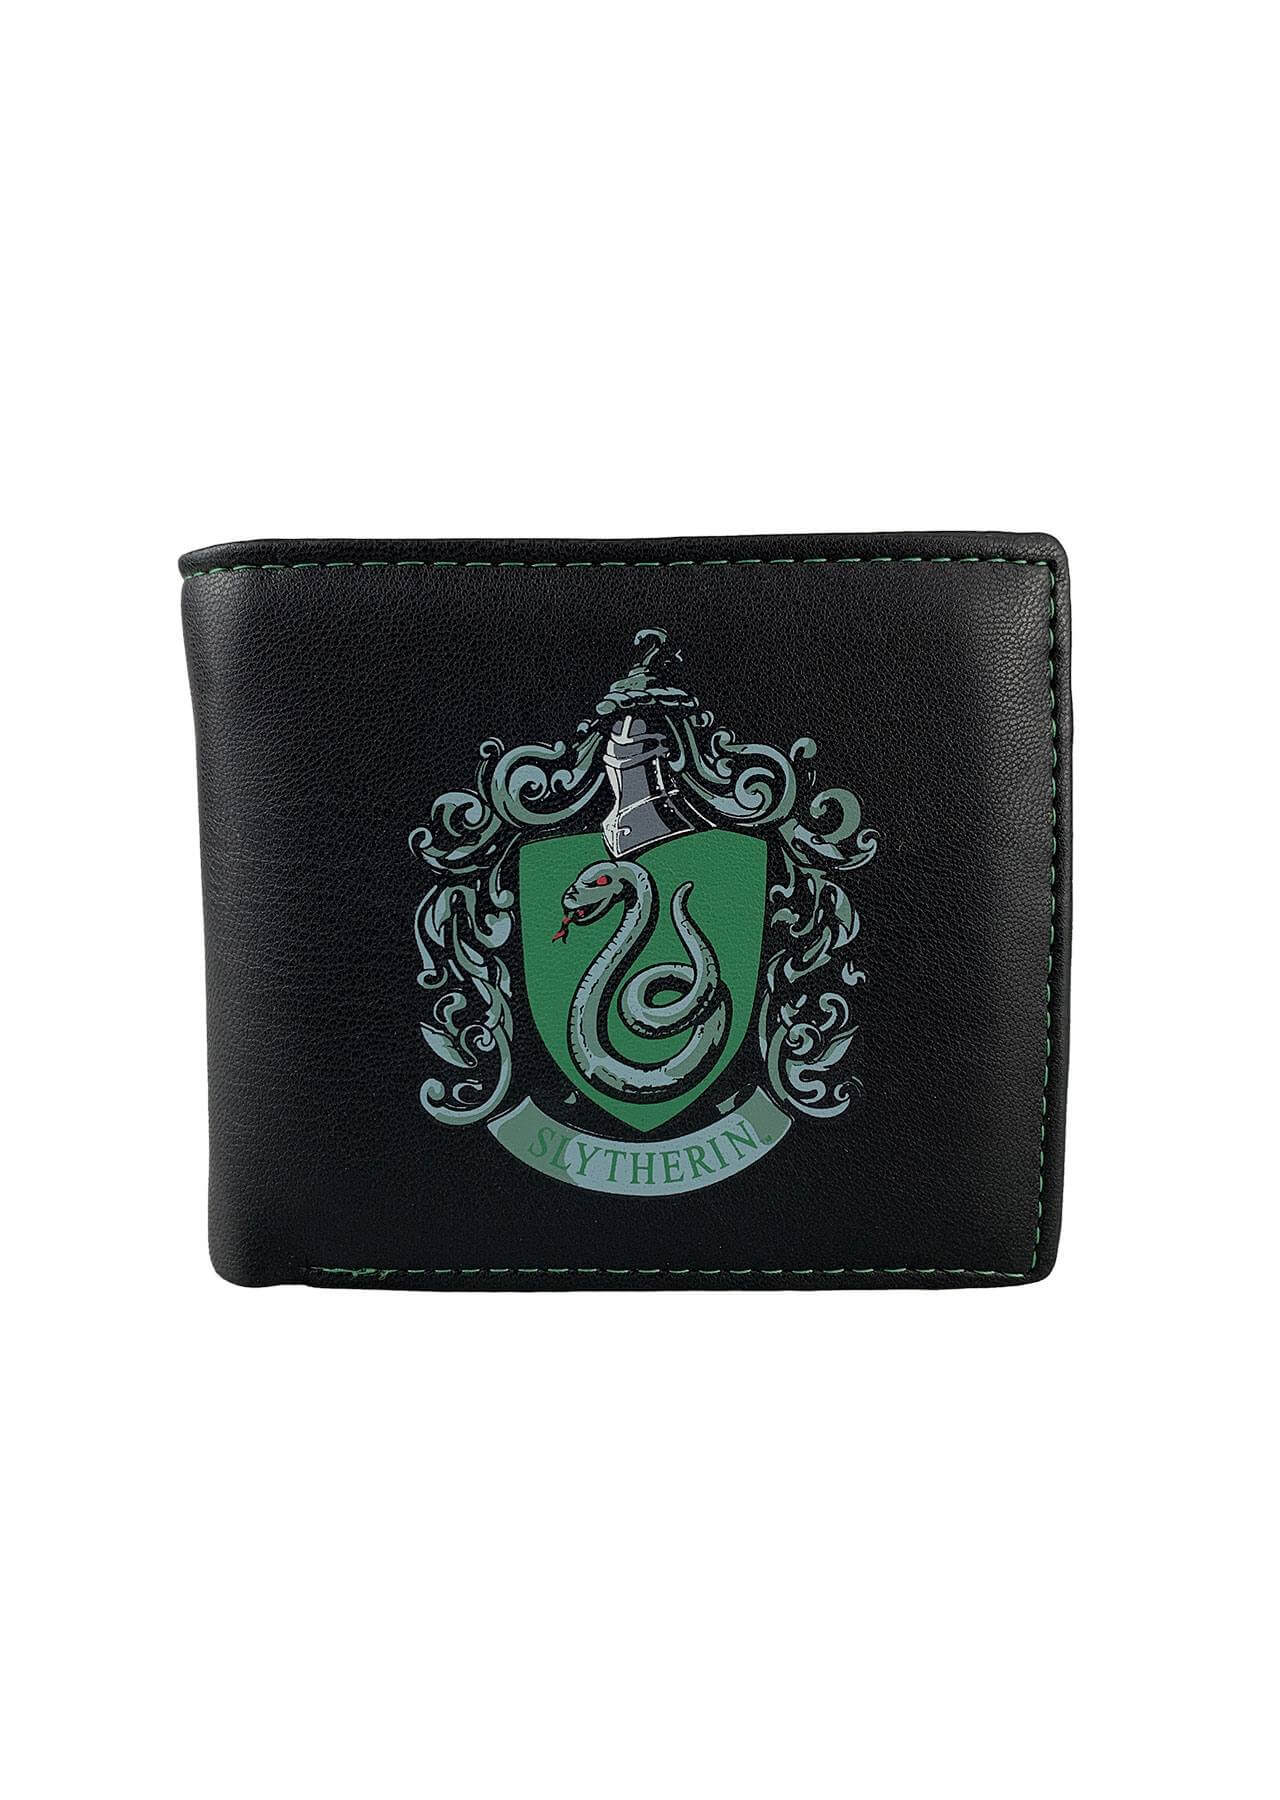 PORTEFEUILLE SERPENTARD VERT - HARRY POTTER - la boutique du sorcier